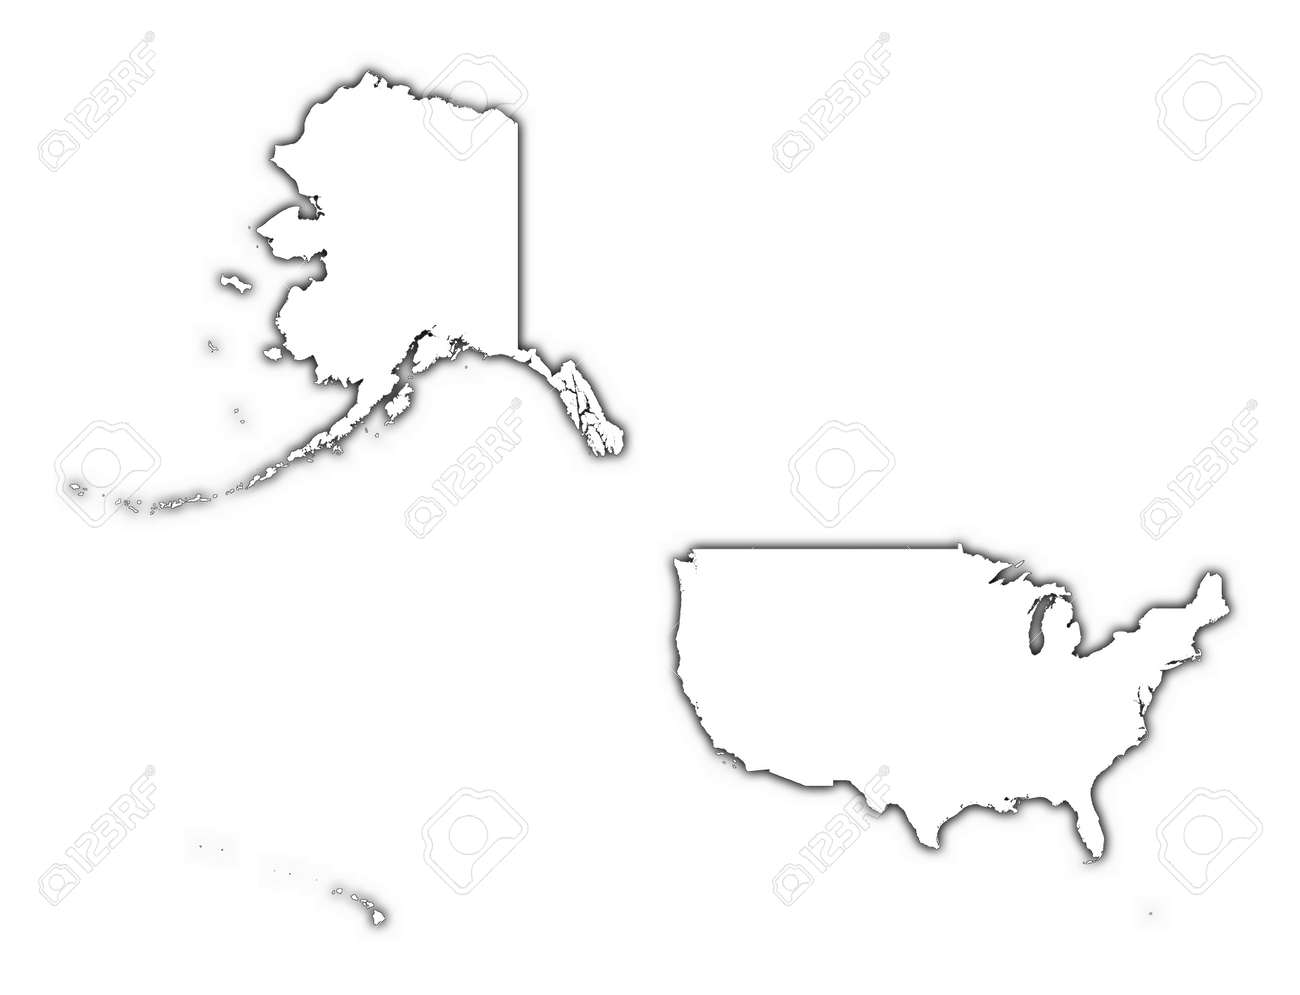 united states outline map with shadow detailed mercator projection stock photo 2190399